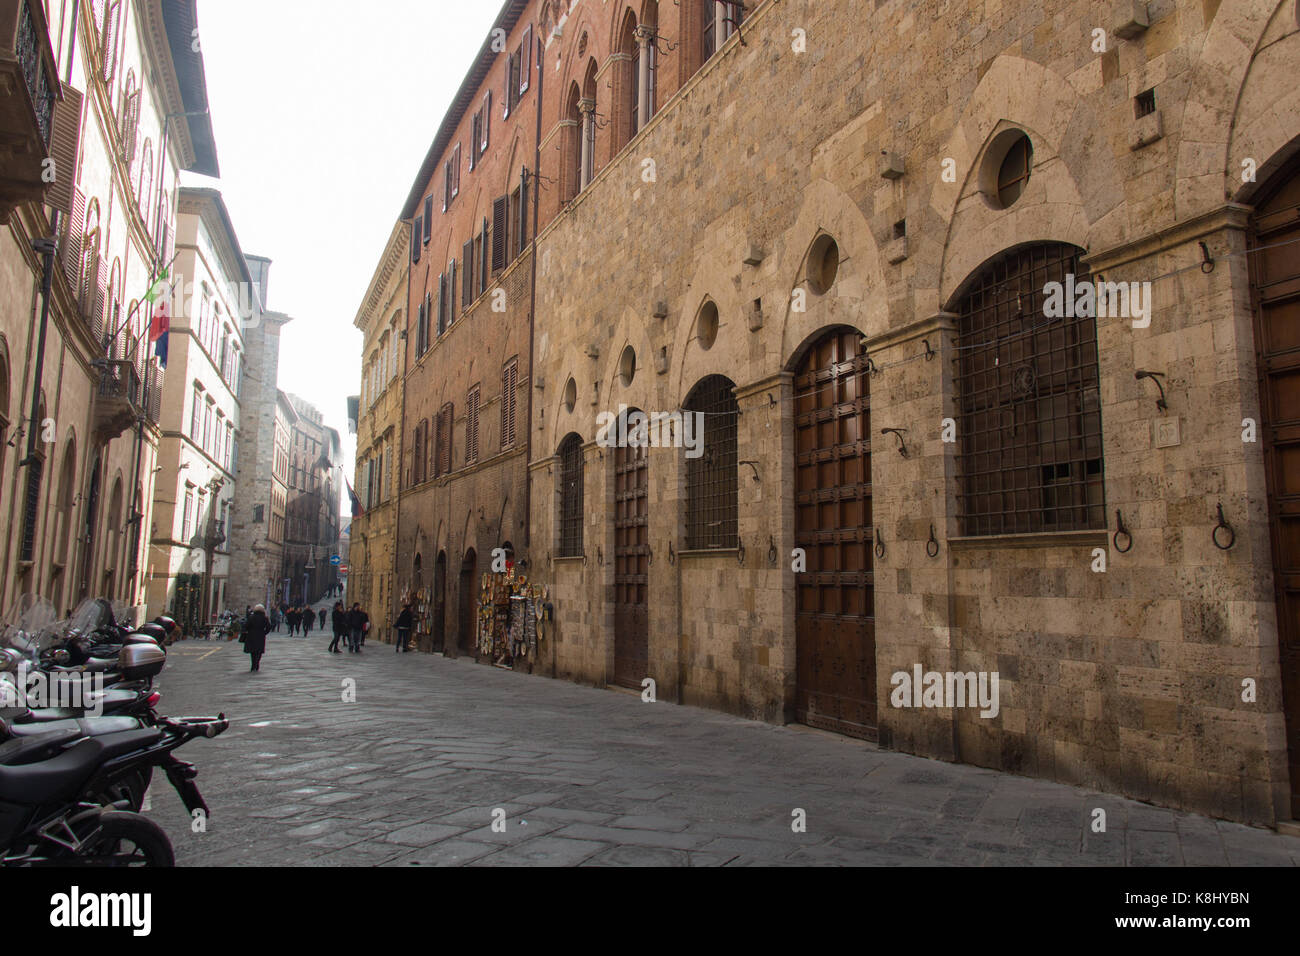 Italy, Siena - December 26 2016: the street view of Siena with typical medieval buildings, people, motorbikes on - Stock Image